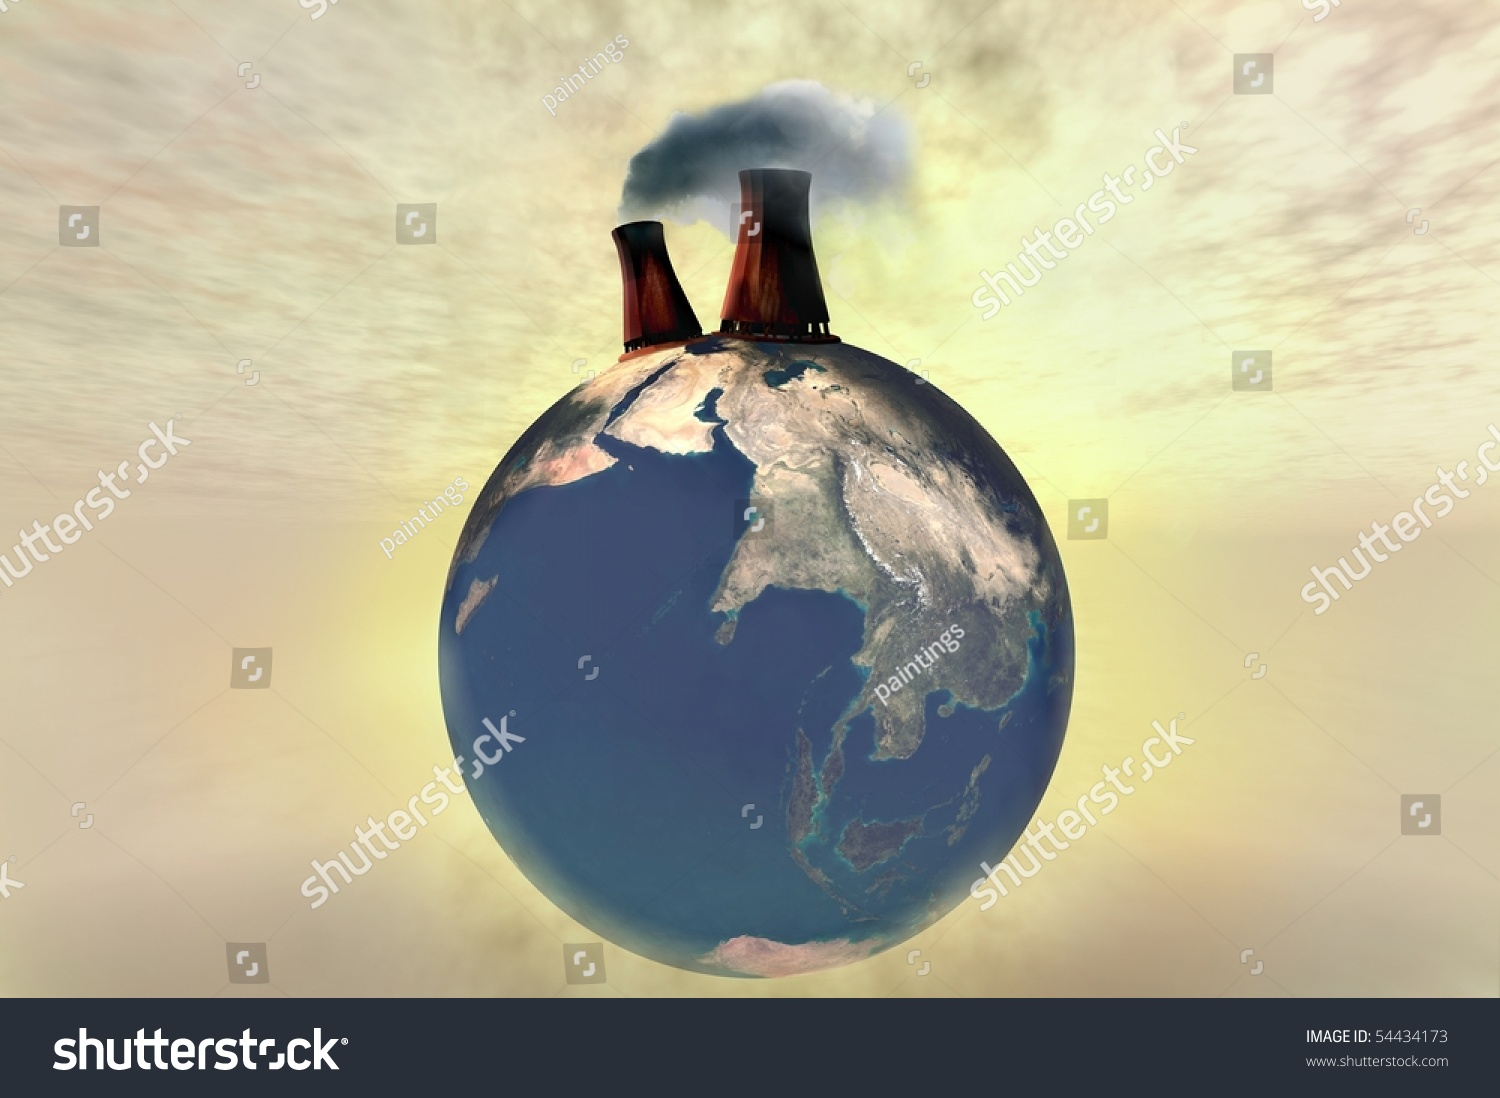 Polluted Planet Earth Globe Illustration 3d Render With ...